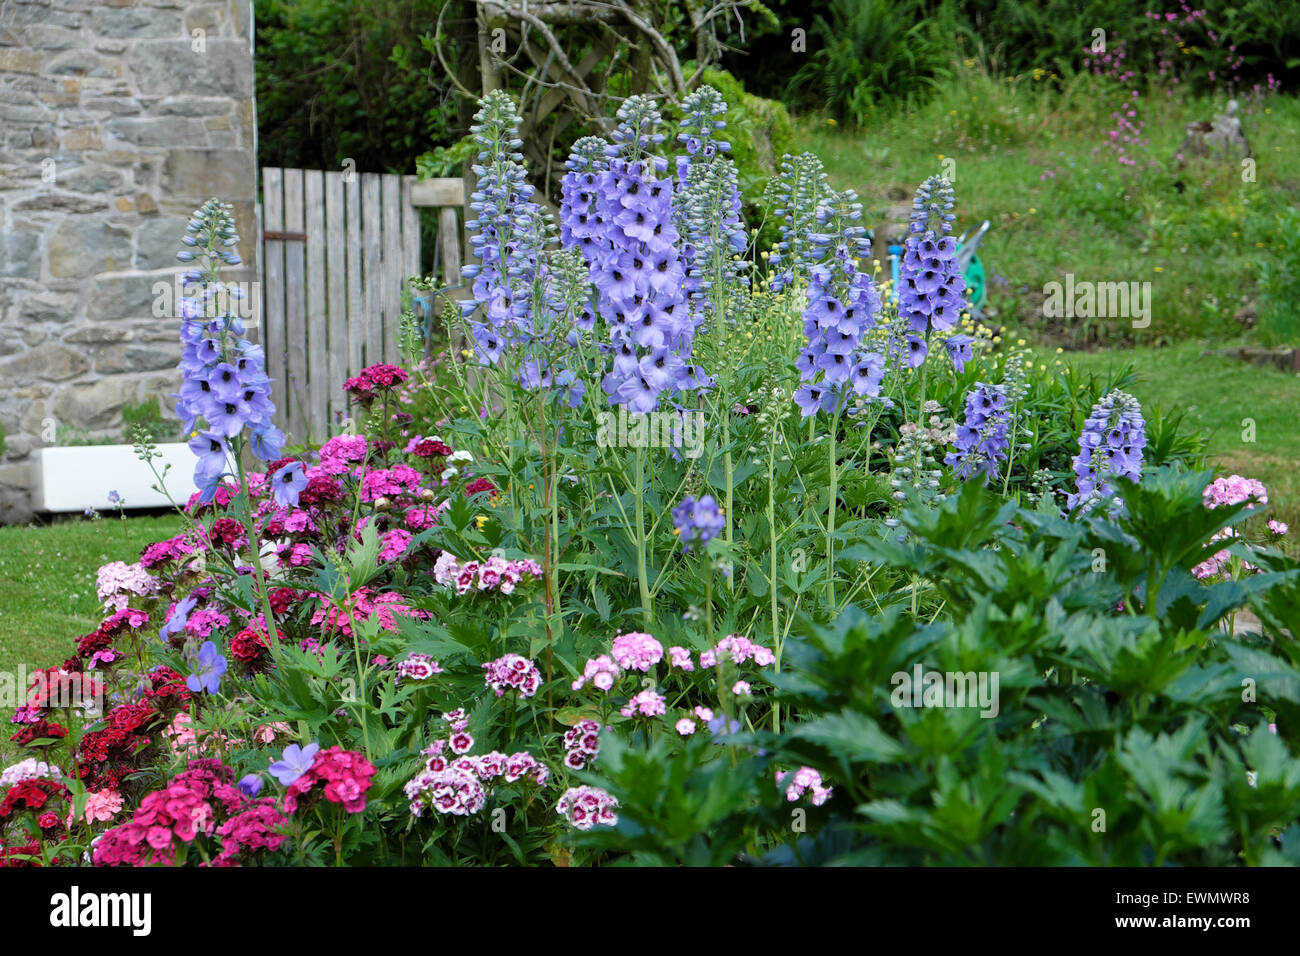 Blue delphiniums and Sweet Williams in bloom growing in a herbaceous border garden bed  in a 'country garden' - Stock Image